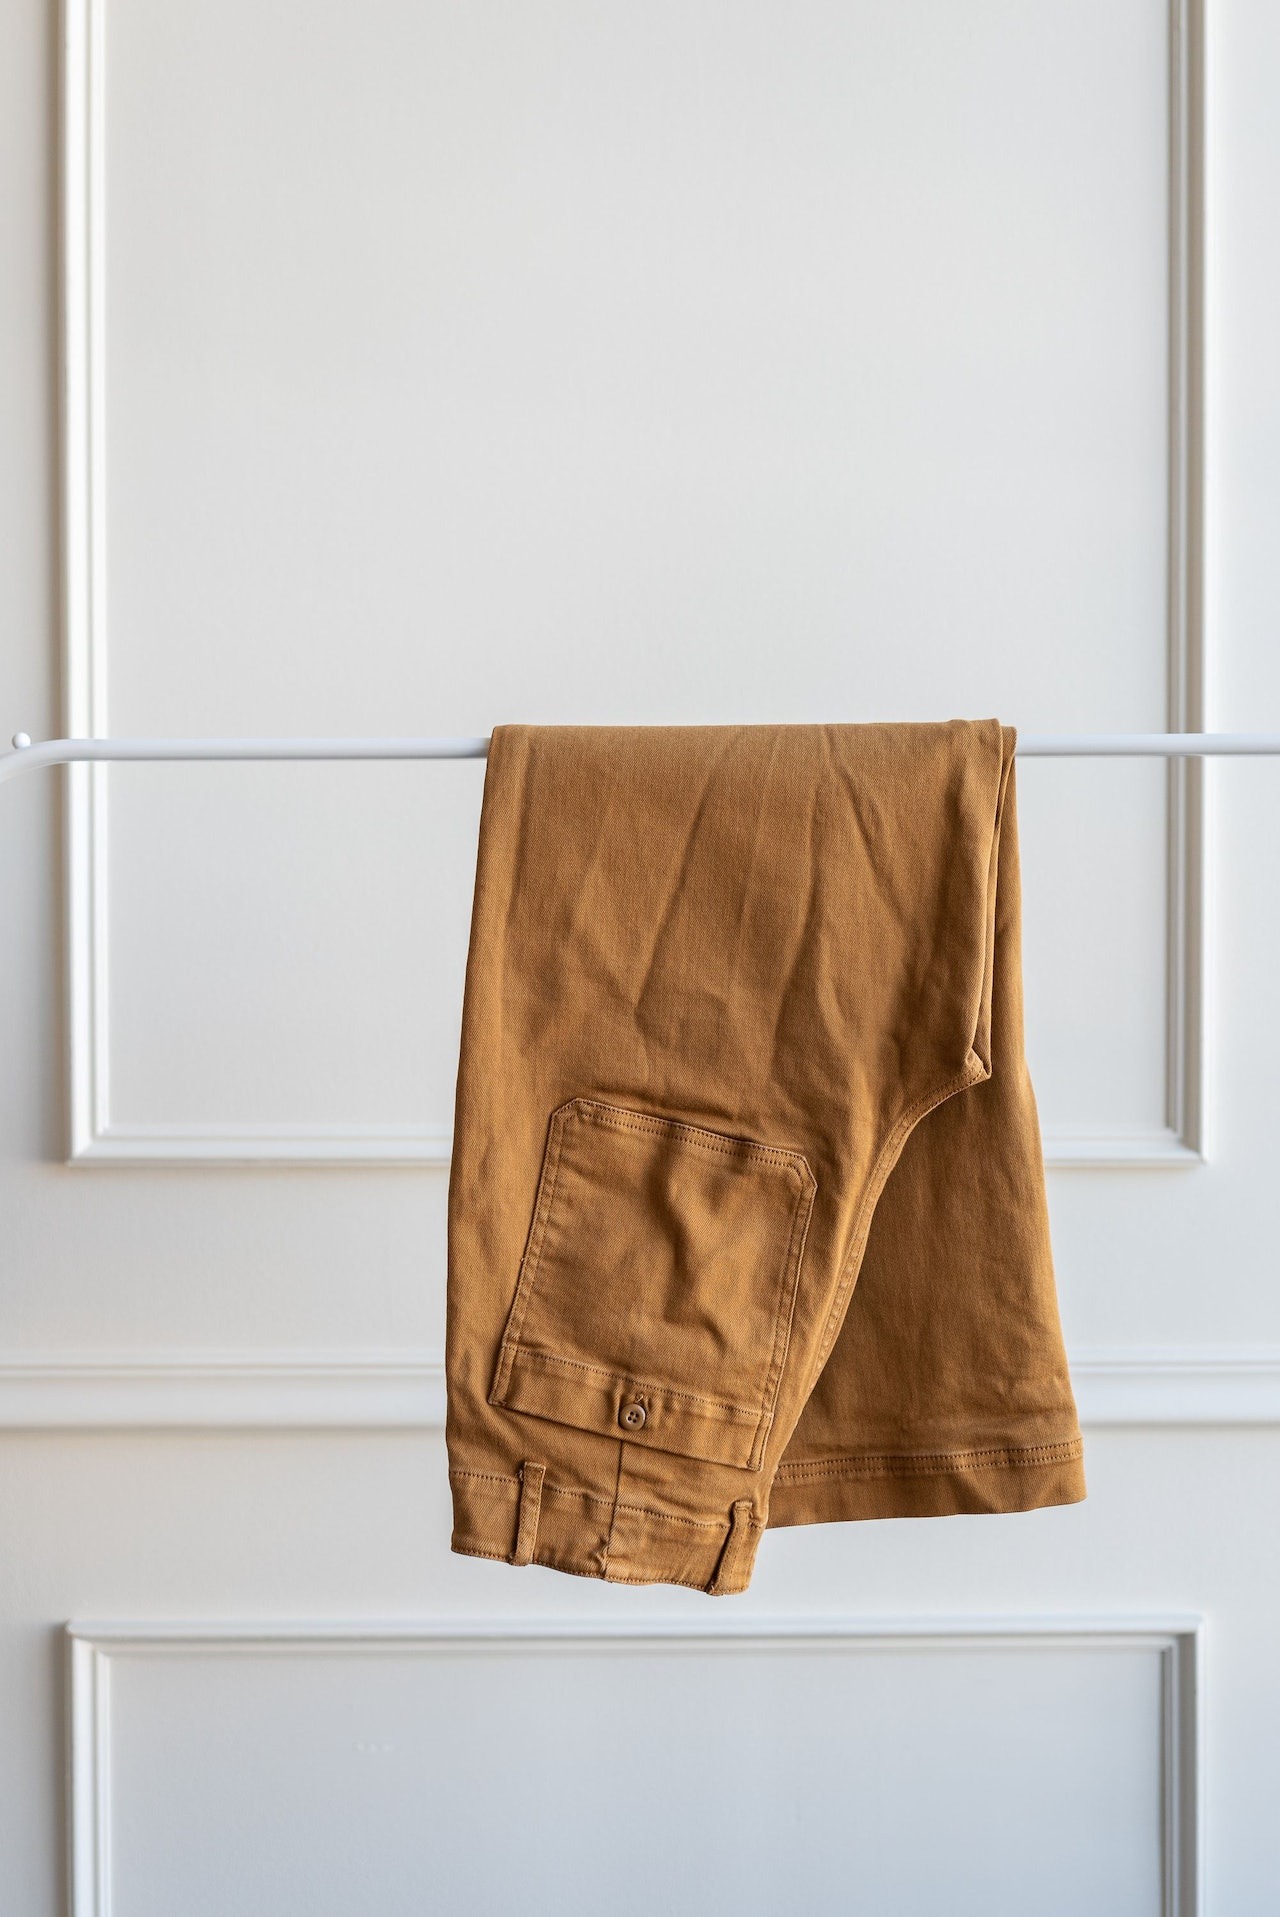 Everlane Wideleg Crop Utility Pant Golden Brown by Conscious by Chloé